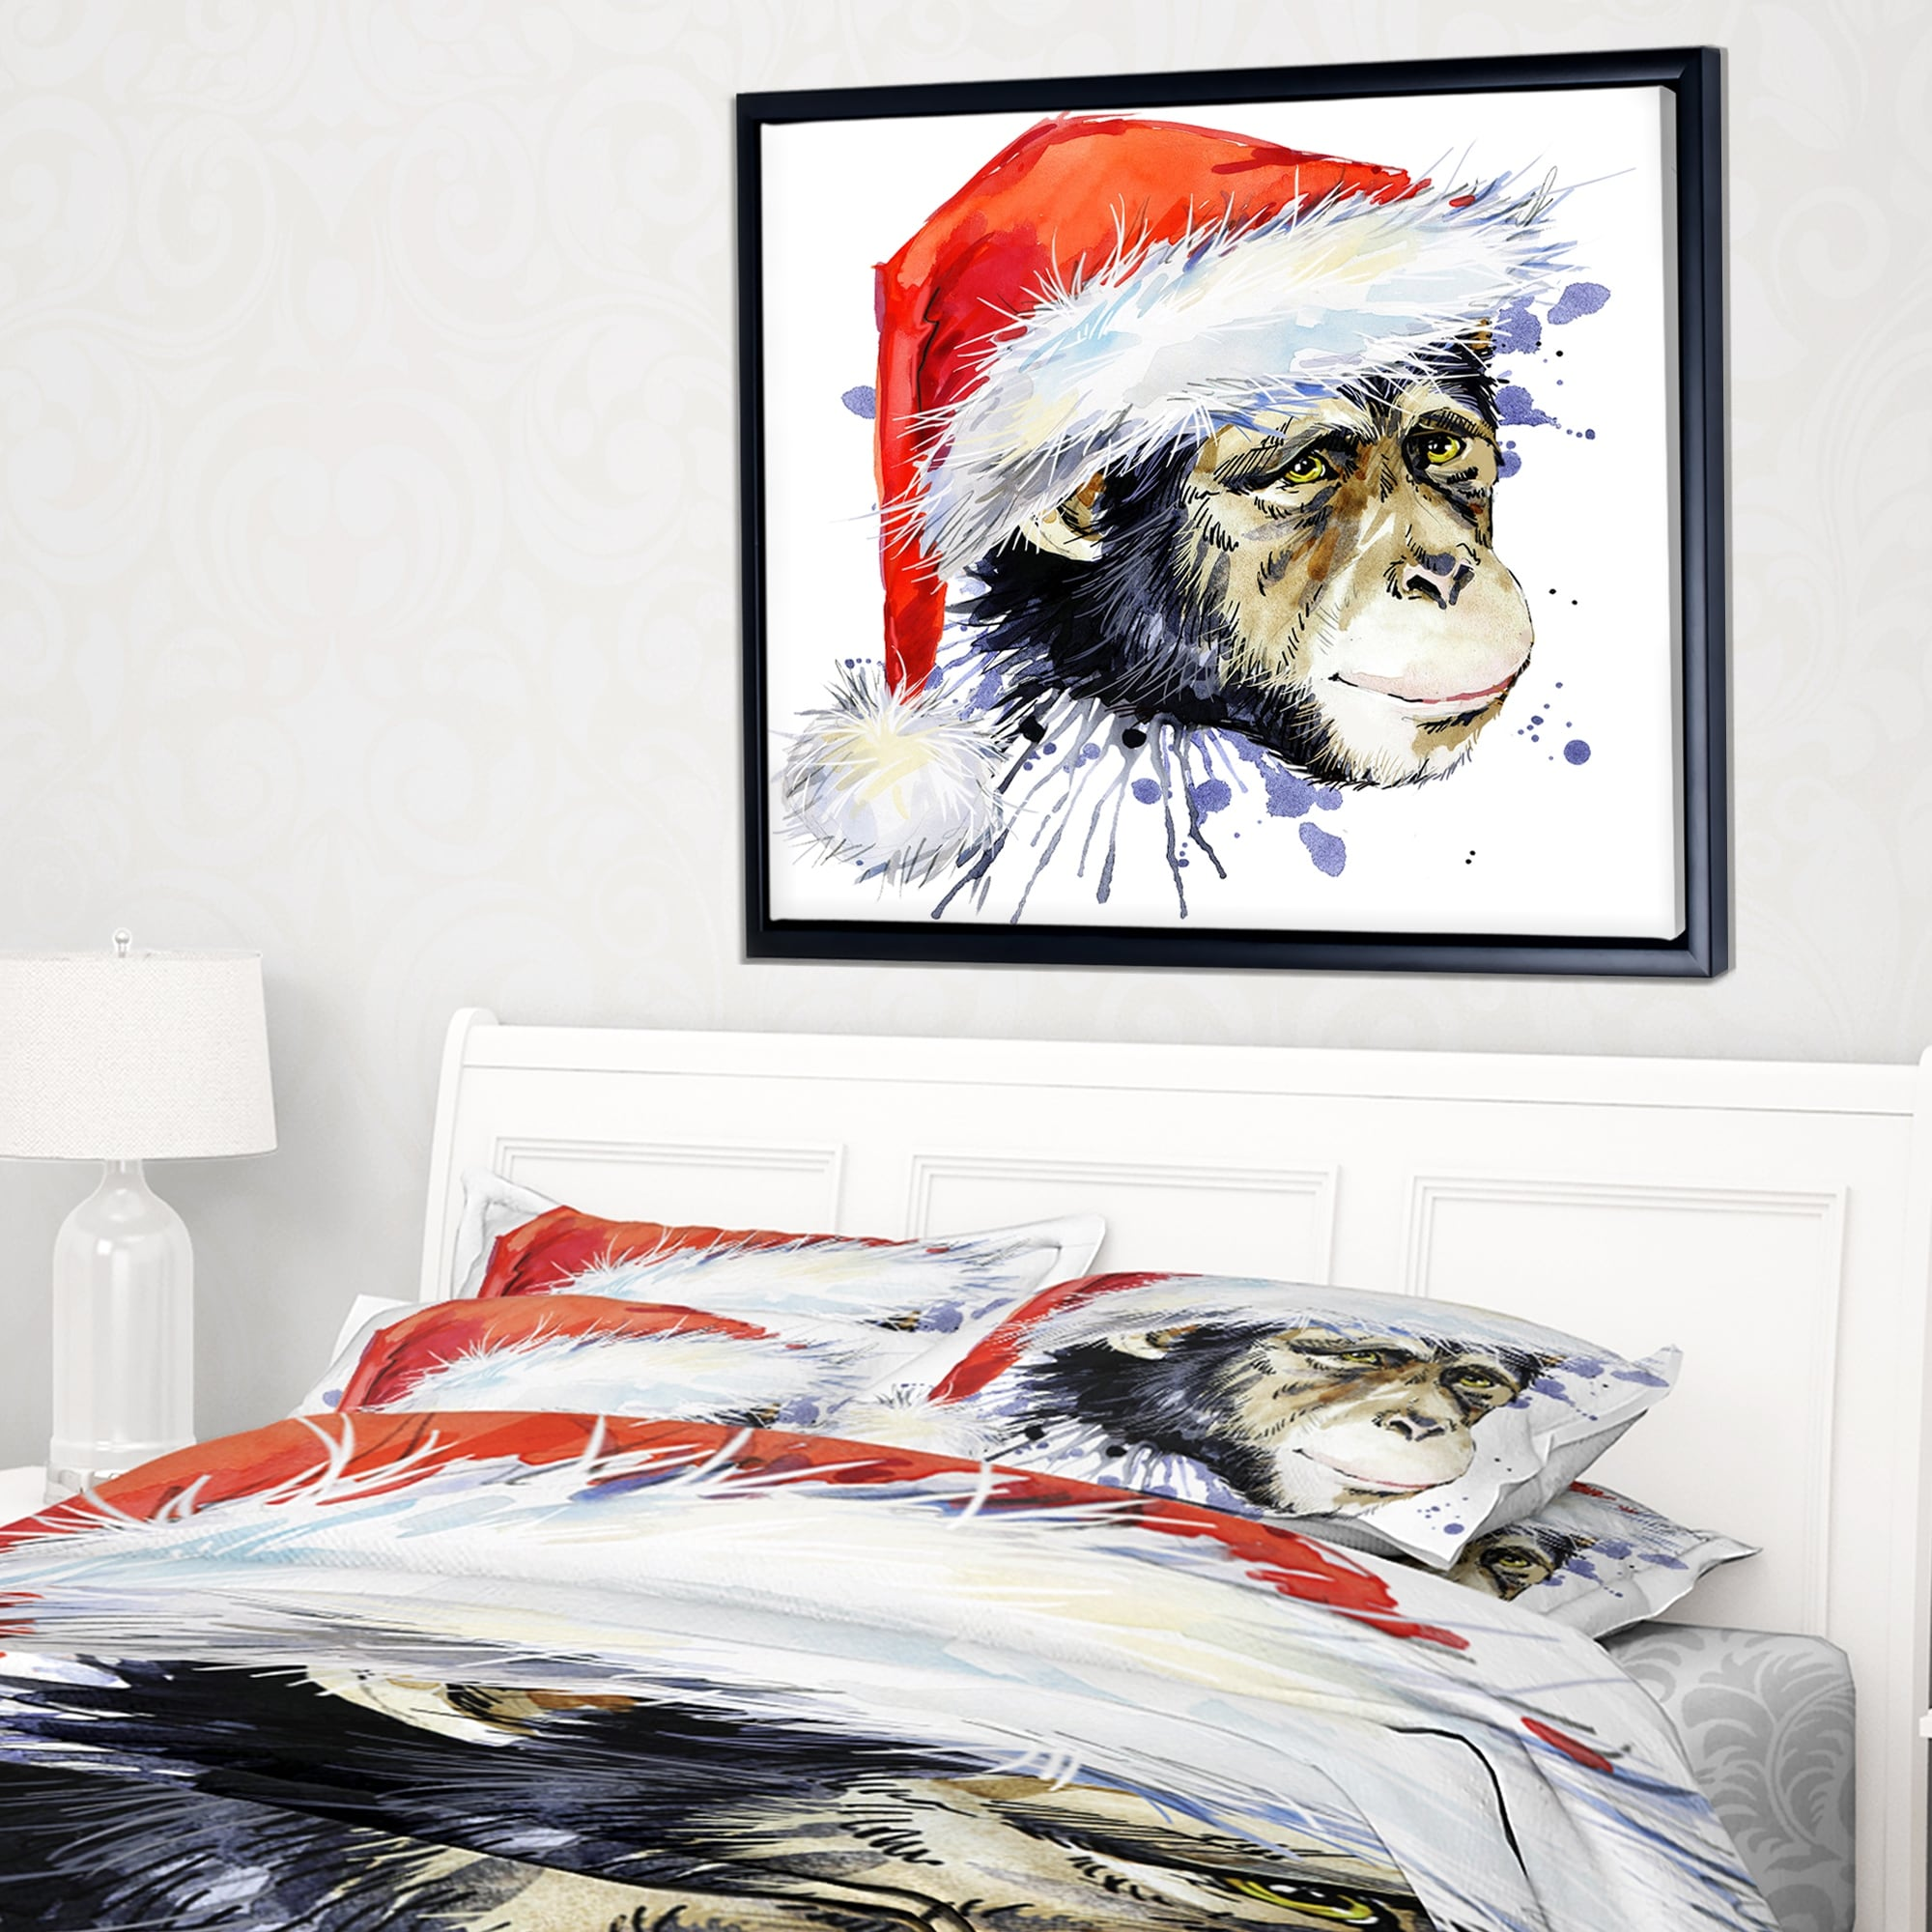 Designart Monkey Santa Clause Animal Framed Canvas Art Overstock 18936384